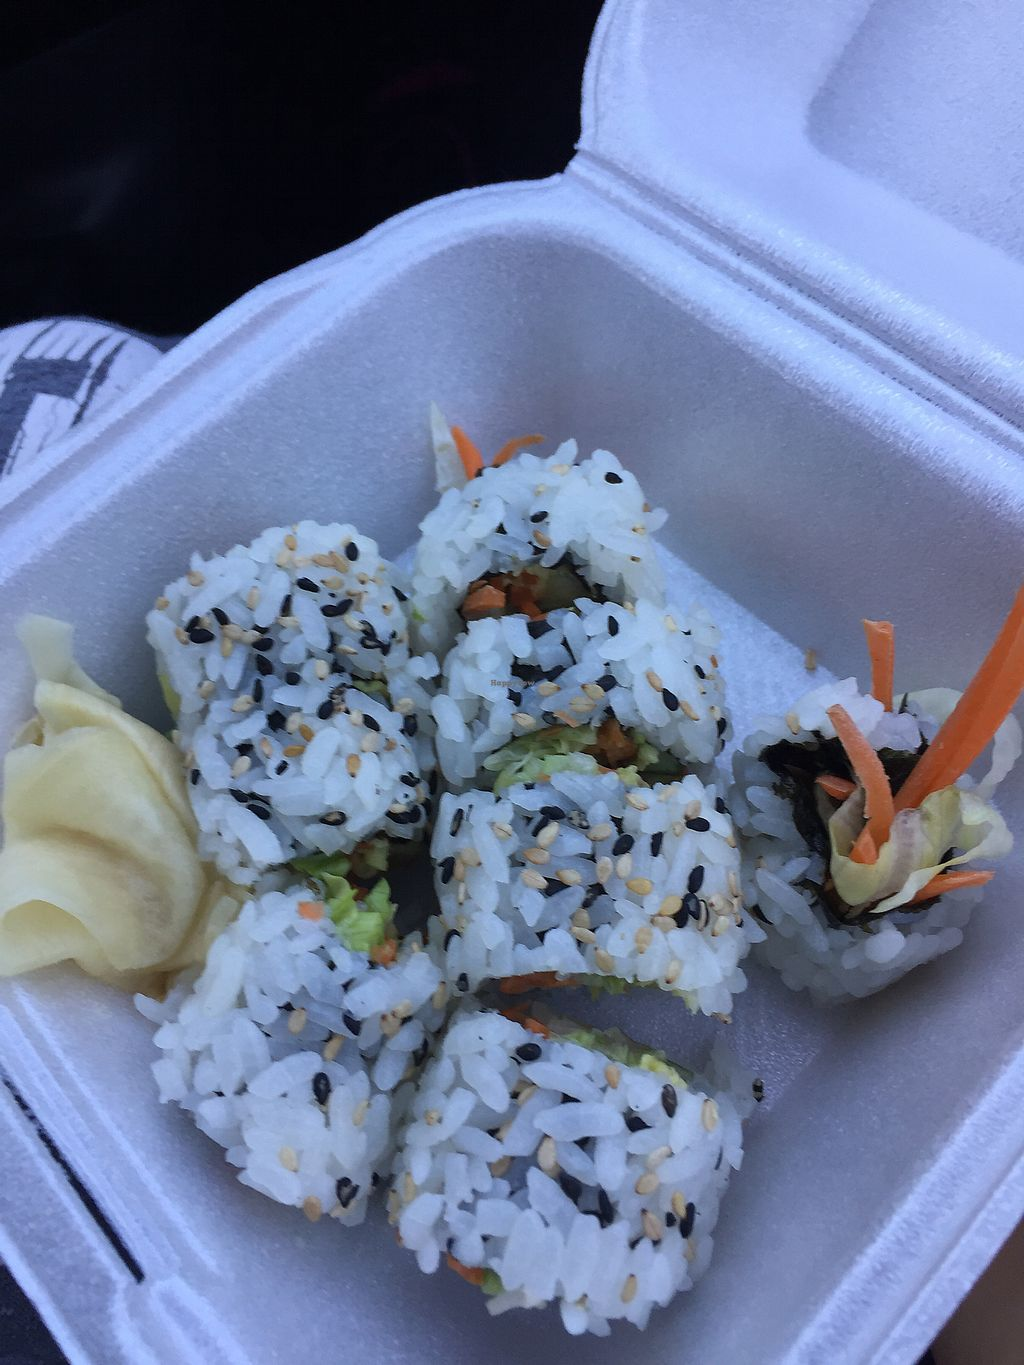 "Photo of Thai House  by <a href=""/members/profile/rosamonique97"">rosamonique97</a> <br/>Veggie sushi w/ avocado  <br/> March 15, 2018  - <a href='/contact/abuse/image/18591/371124'>Report</a>"